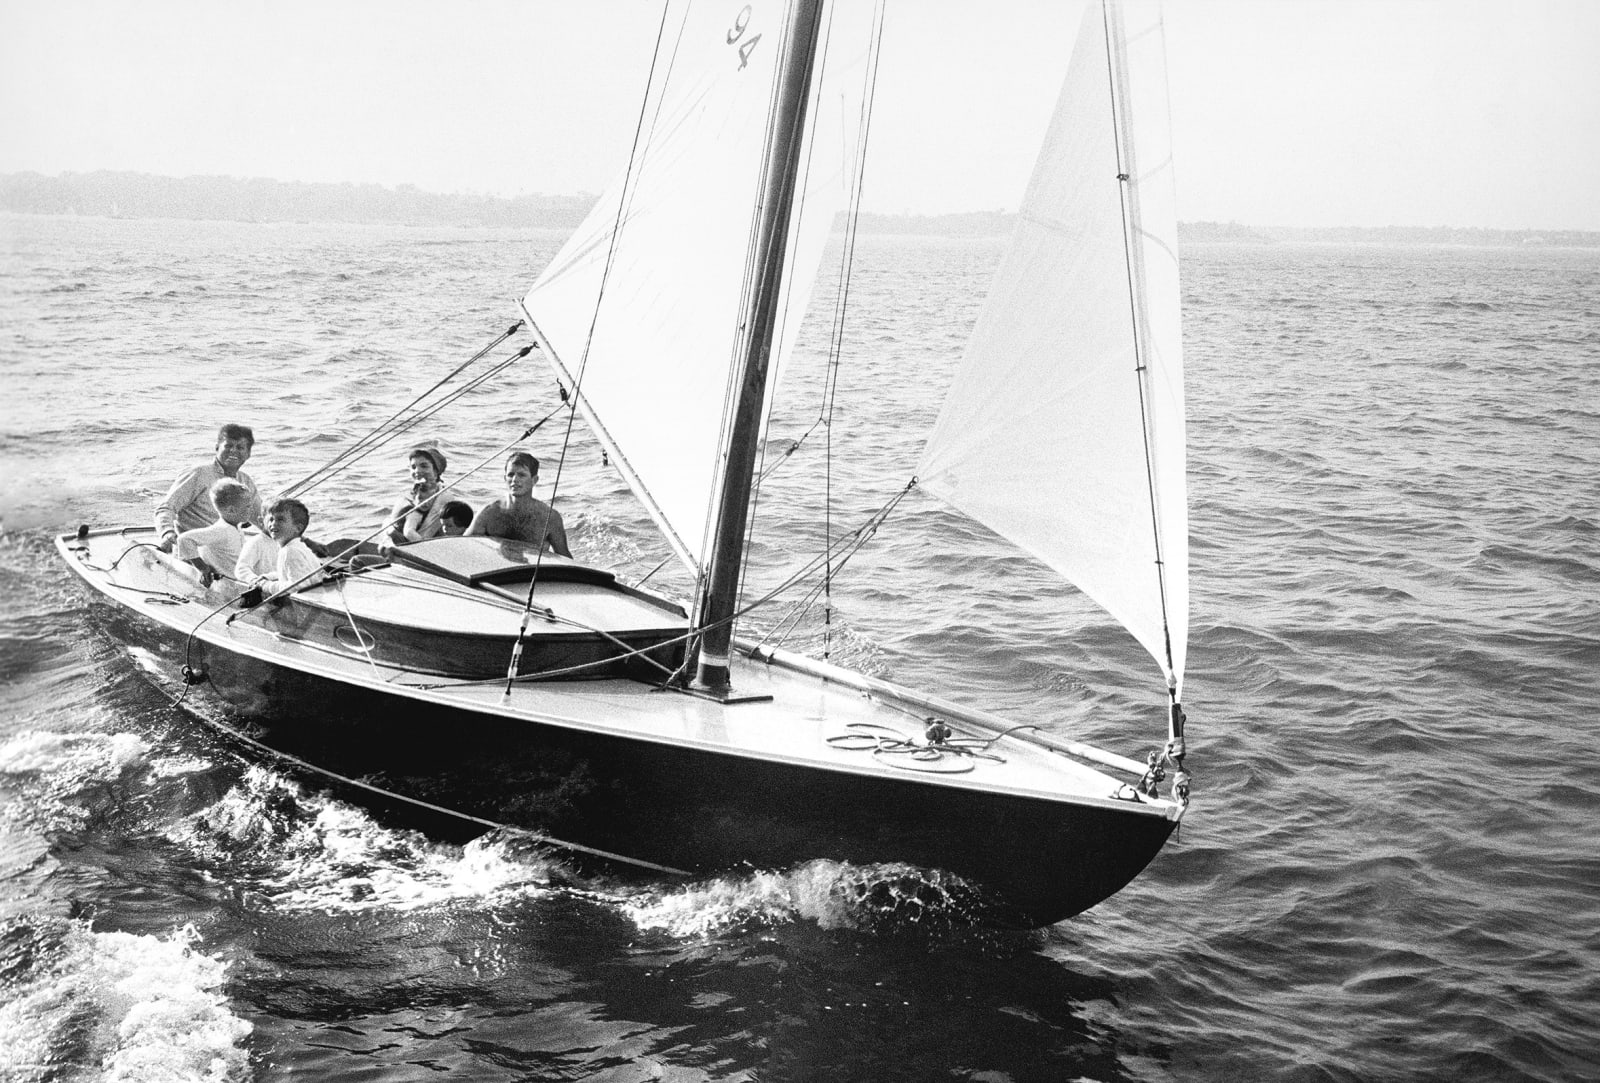 Mark Shaw, Kennedy family sailing on Nantucket Sound, 1959